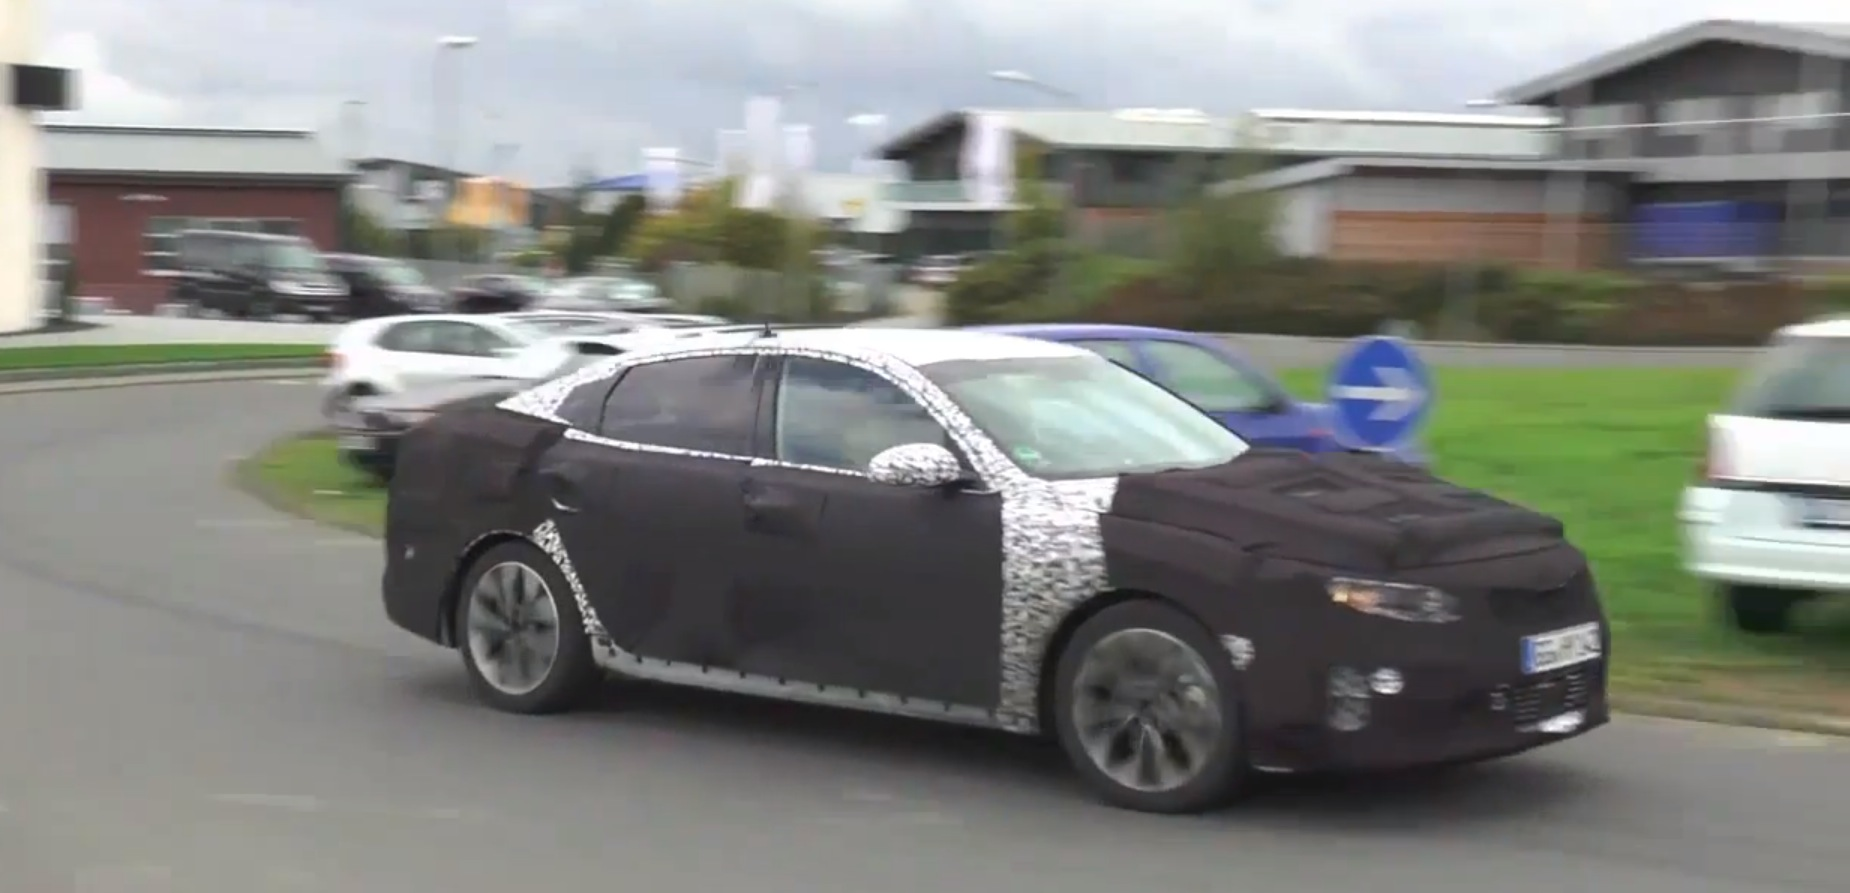 All new 2016 kia optima tuned 20l turbo on sport model spied 5 photos sciox Images